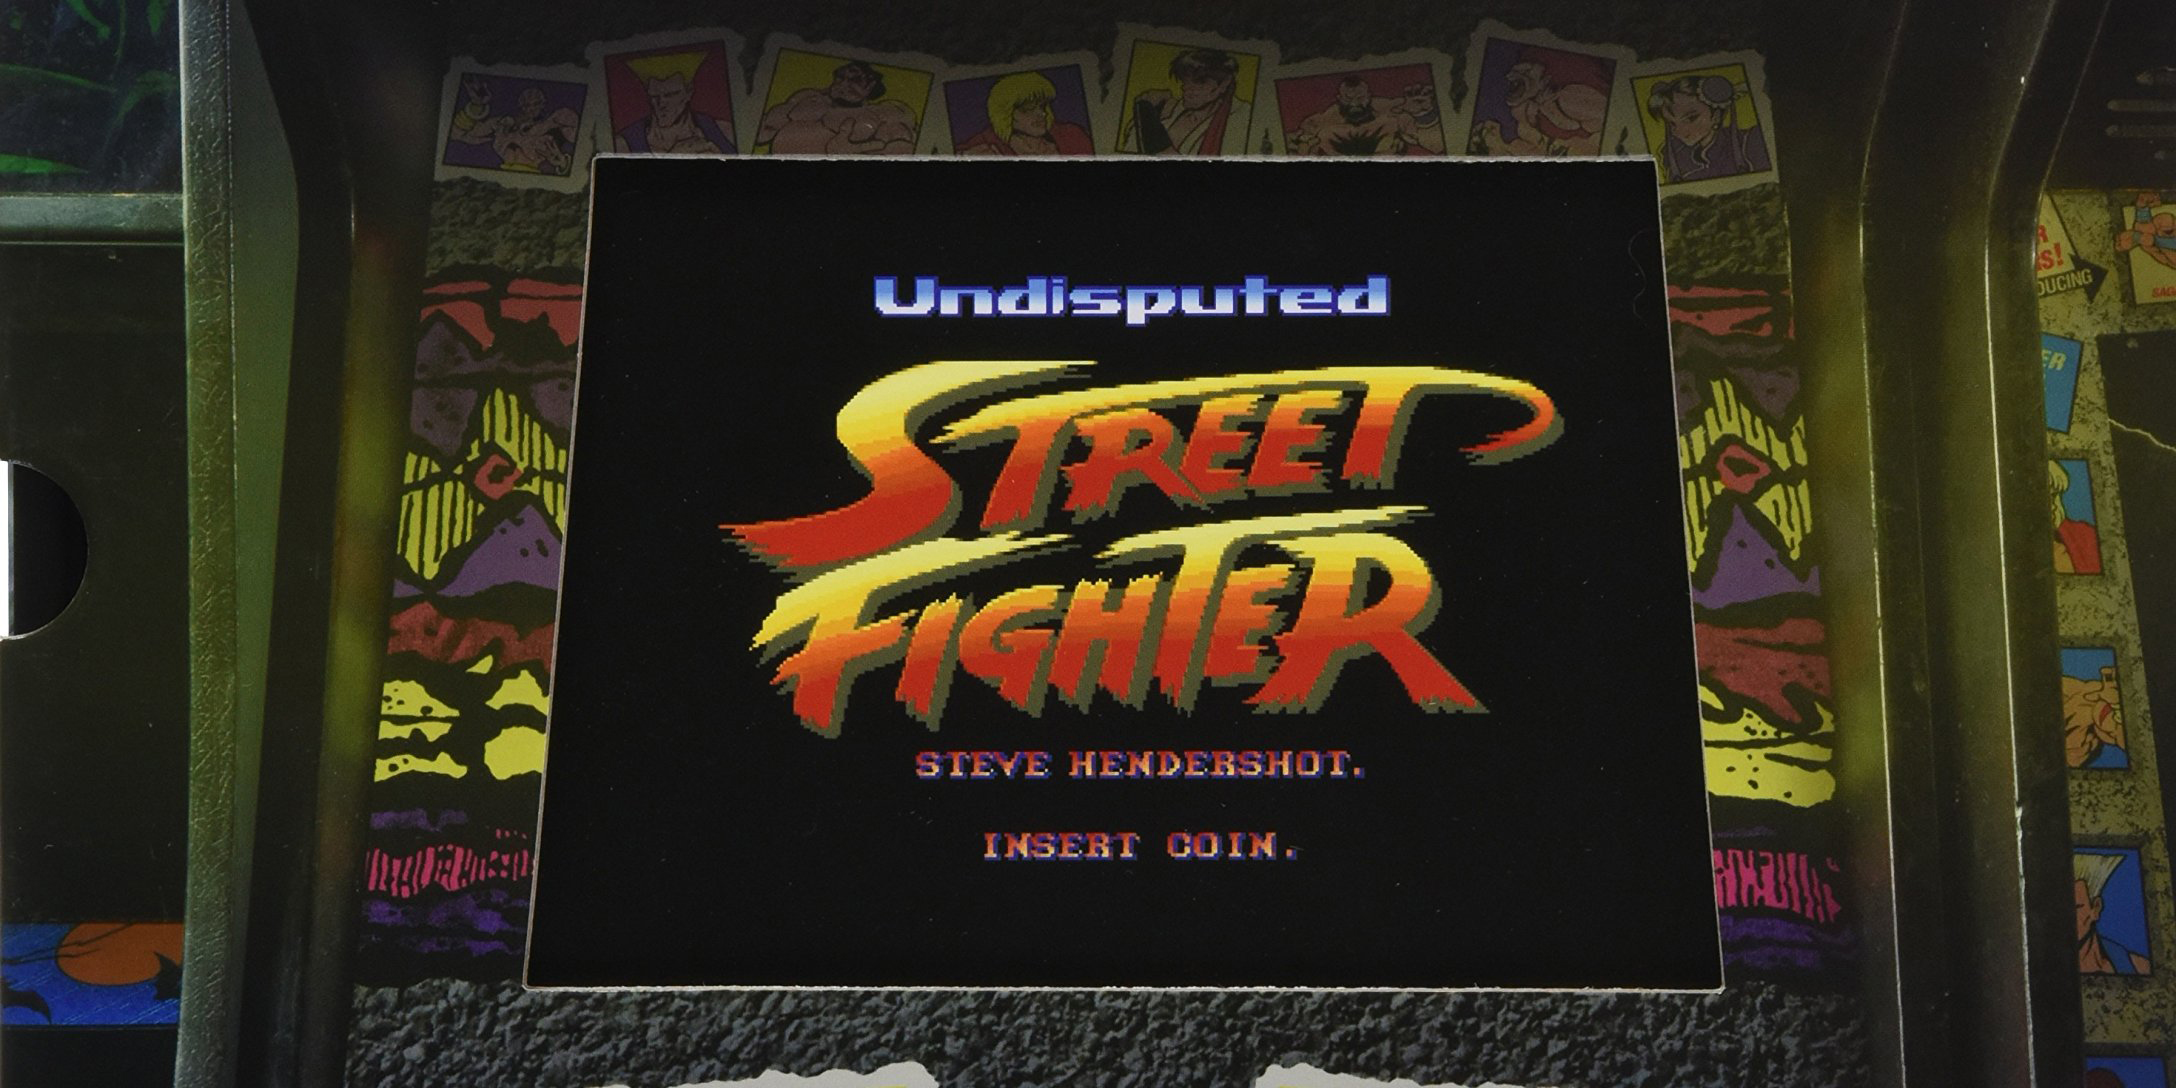 Add the Deluxe Edition Undisputed Street Fighter book to your shelf for $45 (Reg. $65)